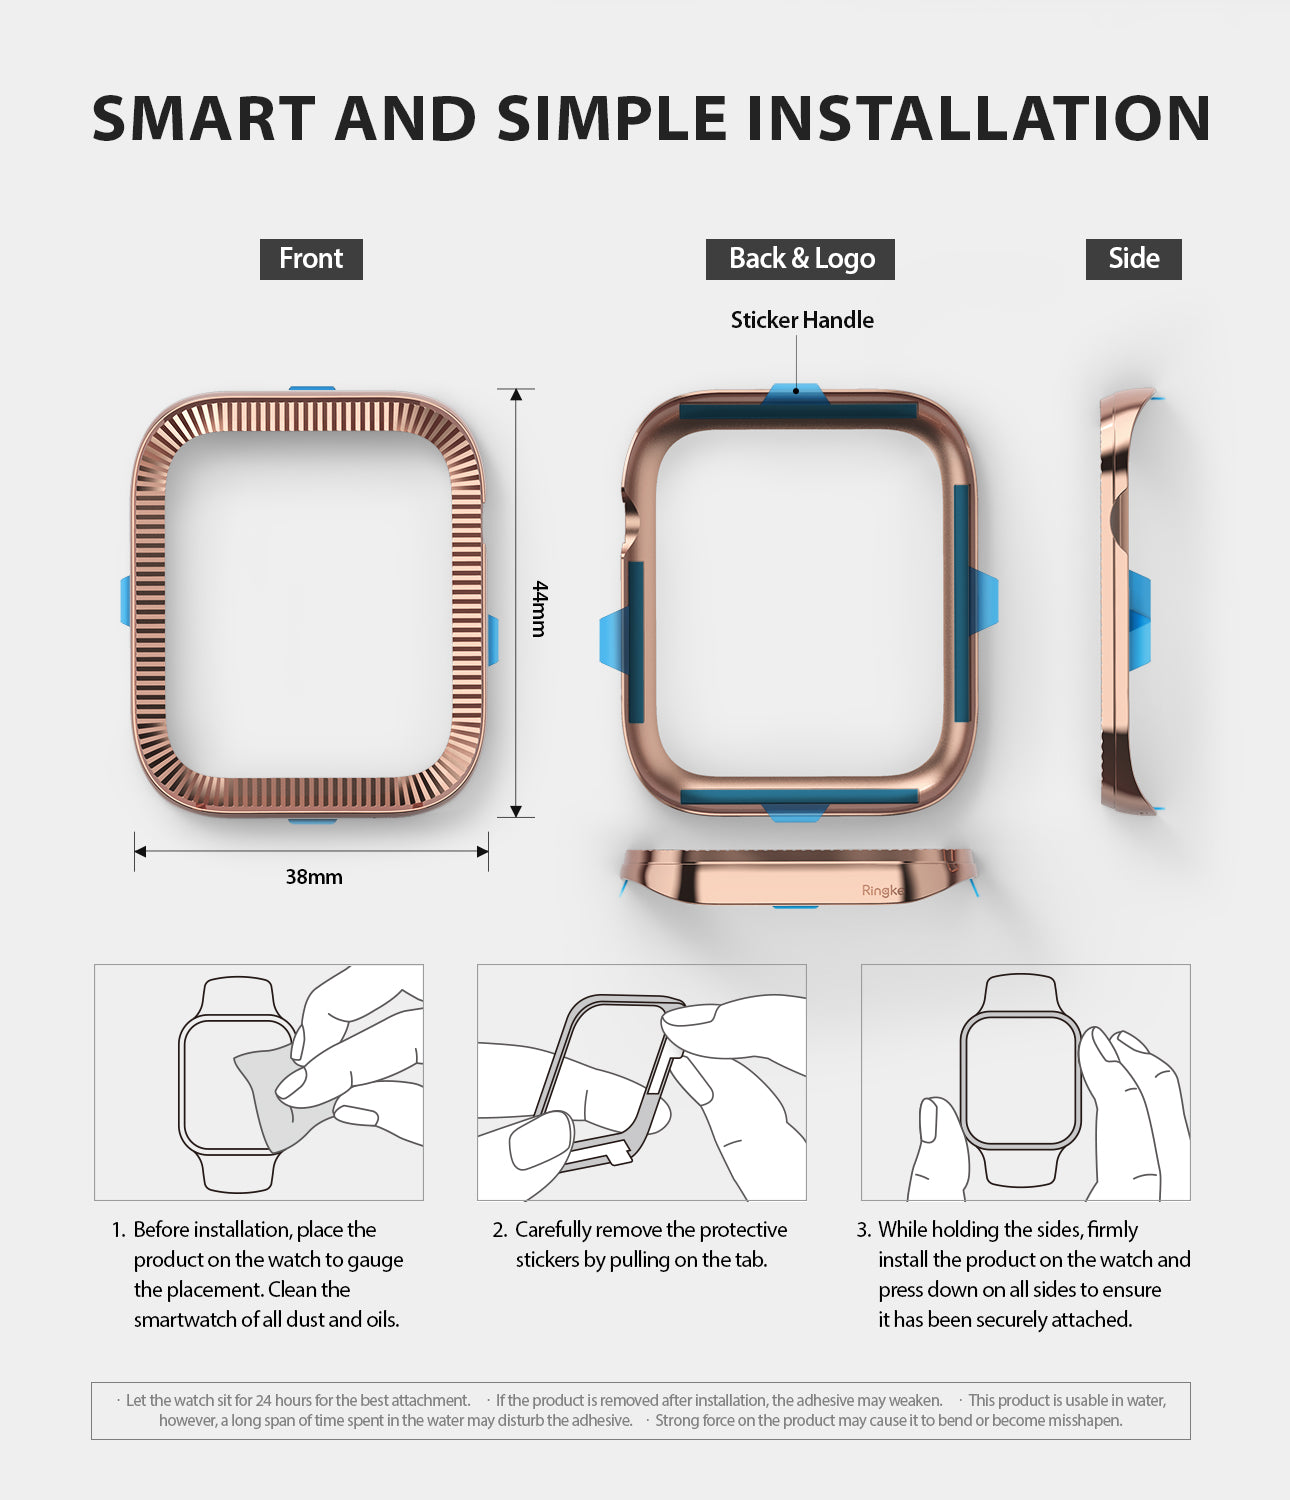 apple watch 4 44mm case ringke bezel styling stainless steel frame cover 44-43 simple installation